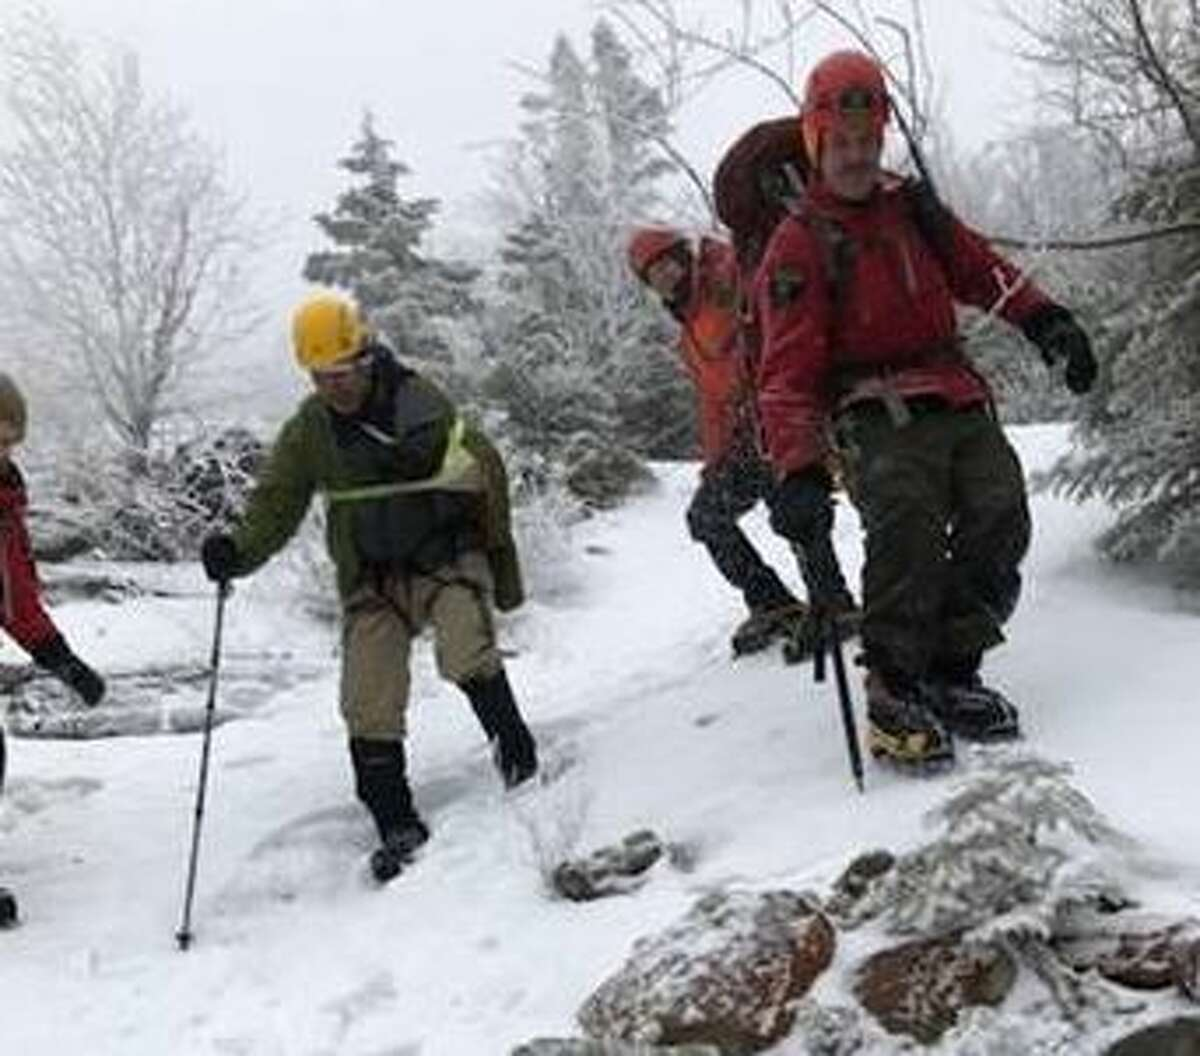 Forest rangers battled harsh conditions and had to set up a rope belay to rescue an injured hiker in the Dix range on Jan. 14, 2020 in North Hudson, N.Y.